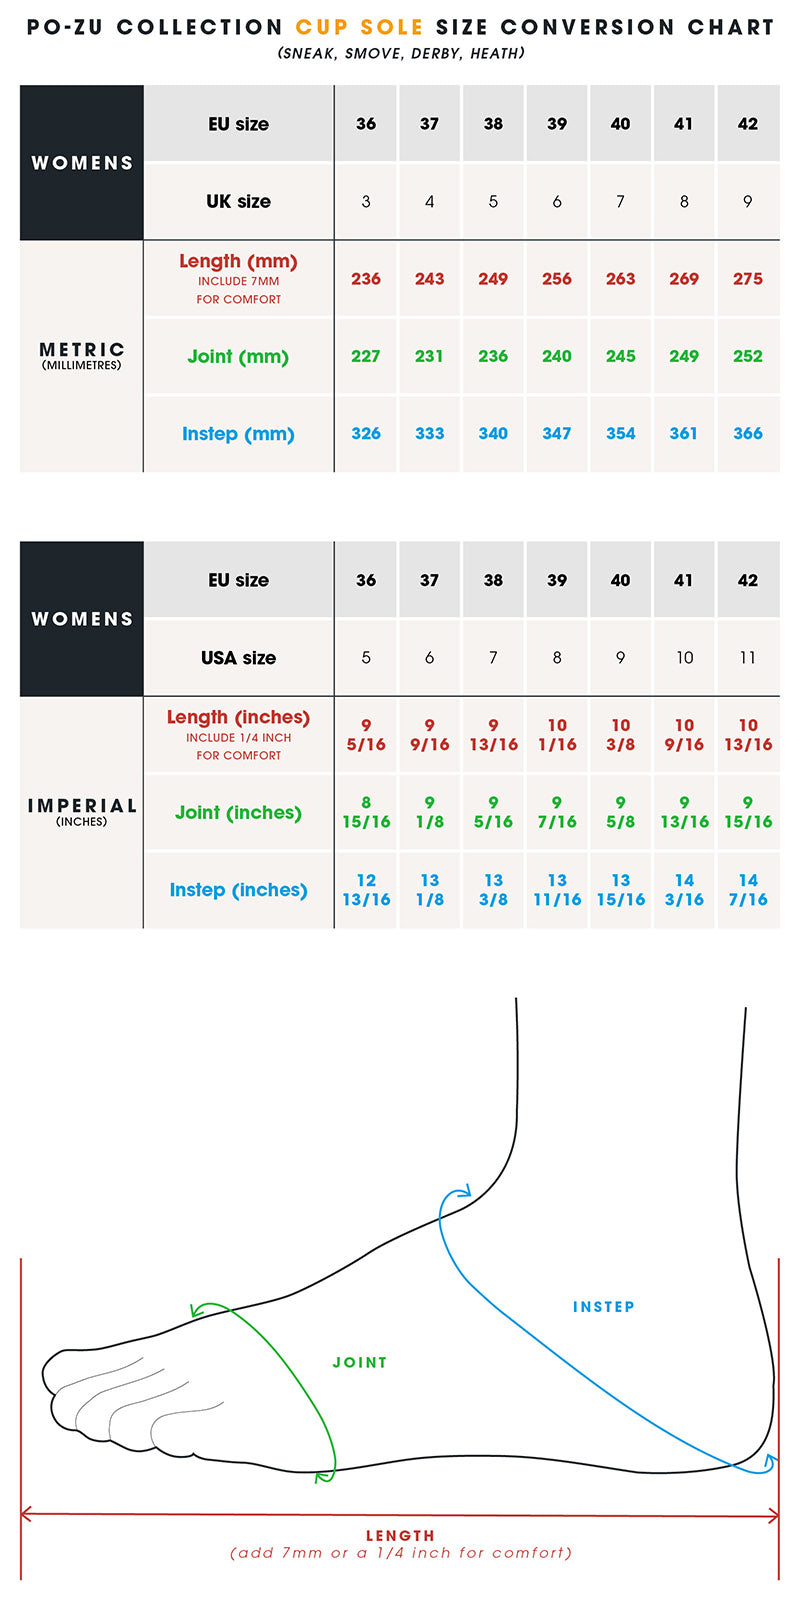 po-zu sizing chart for womens cup soles